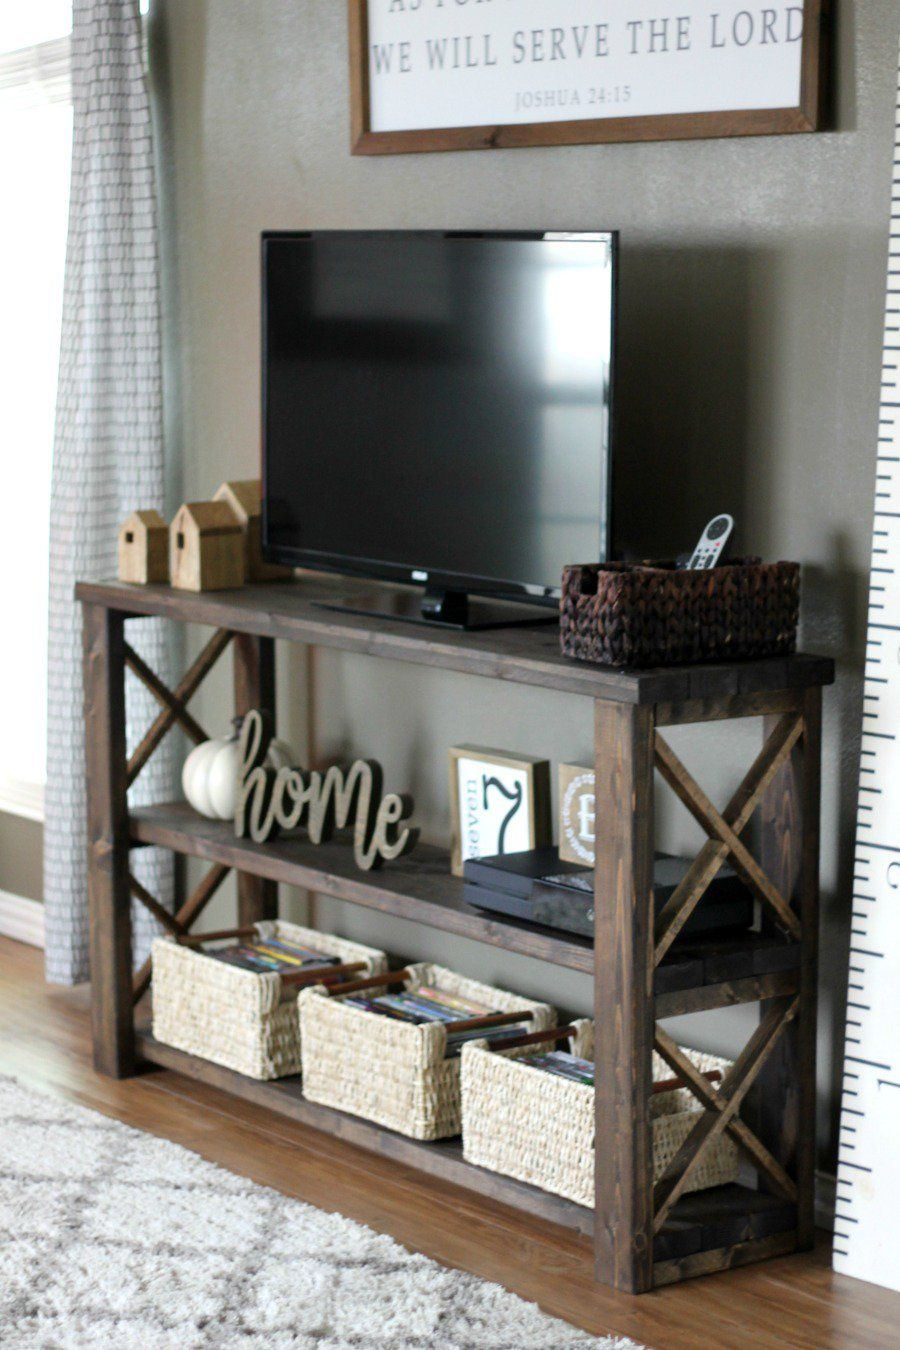 How to Build a DIY Console Table for $50 or Less #remodelingorroomdesign